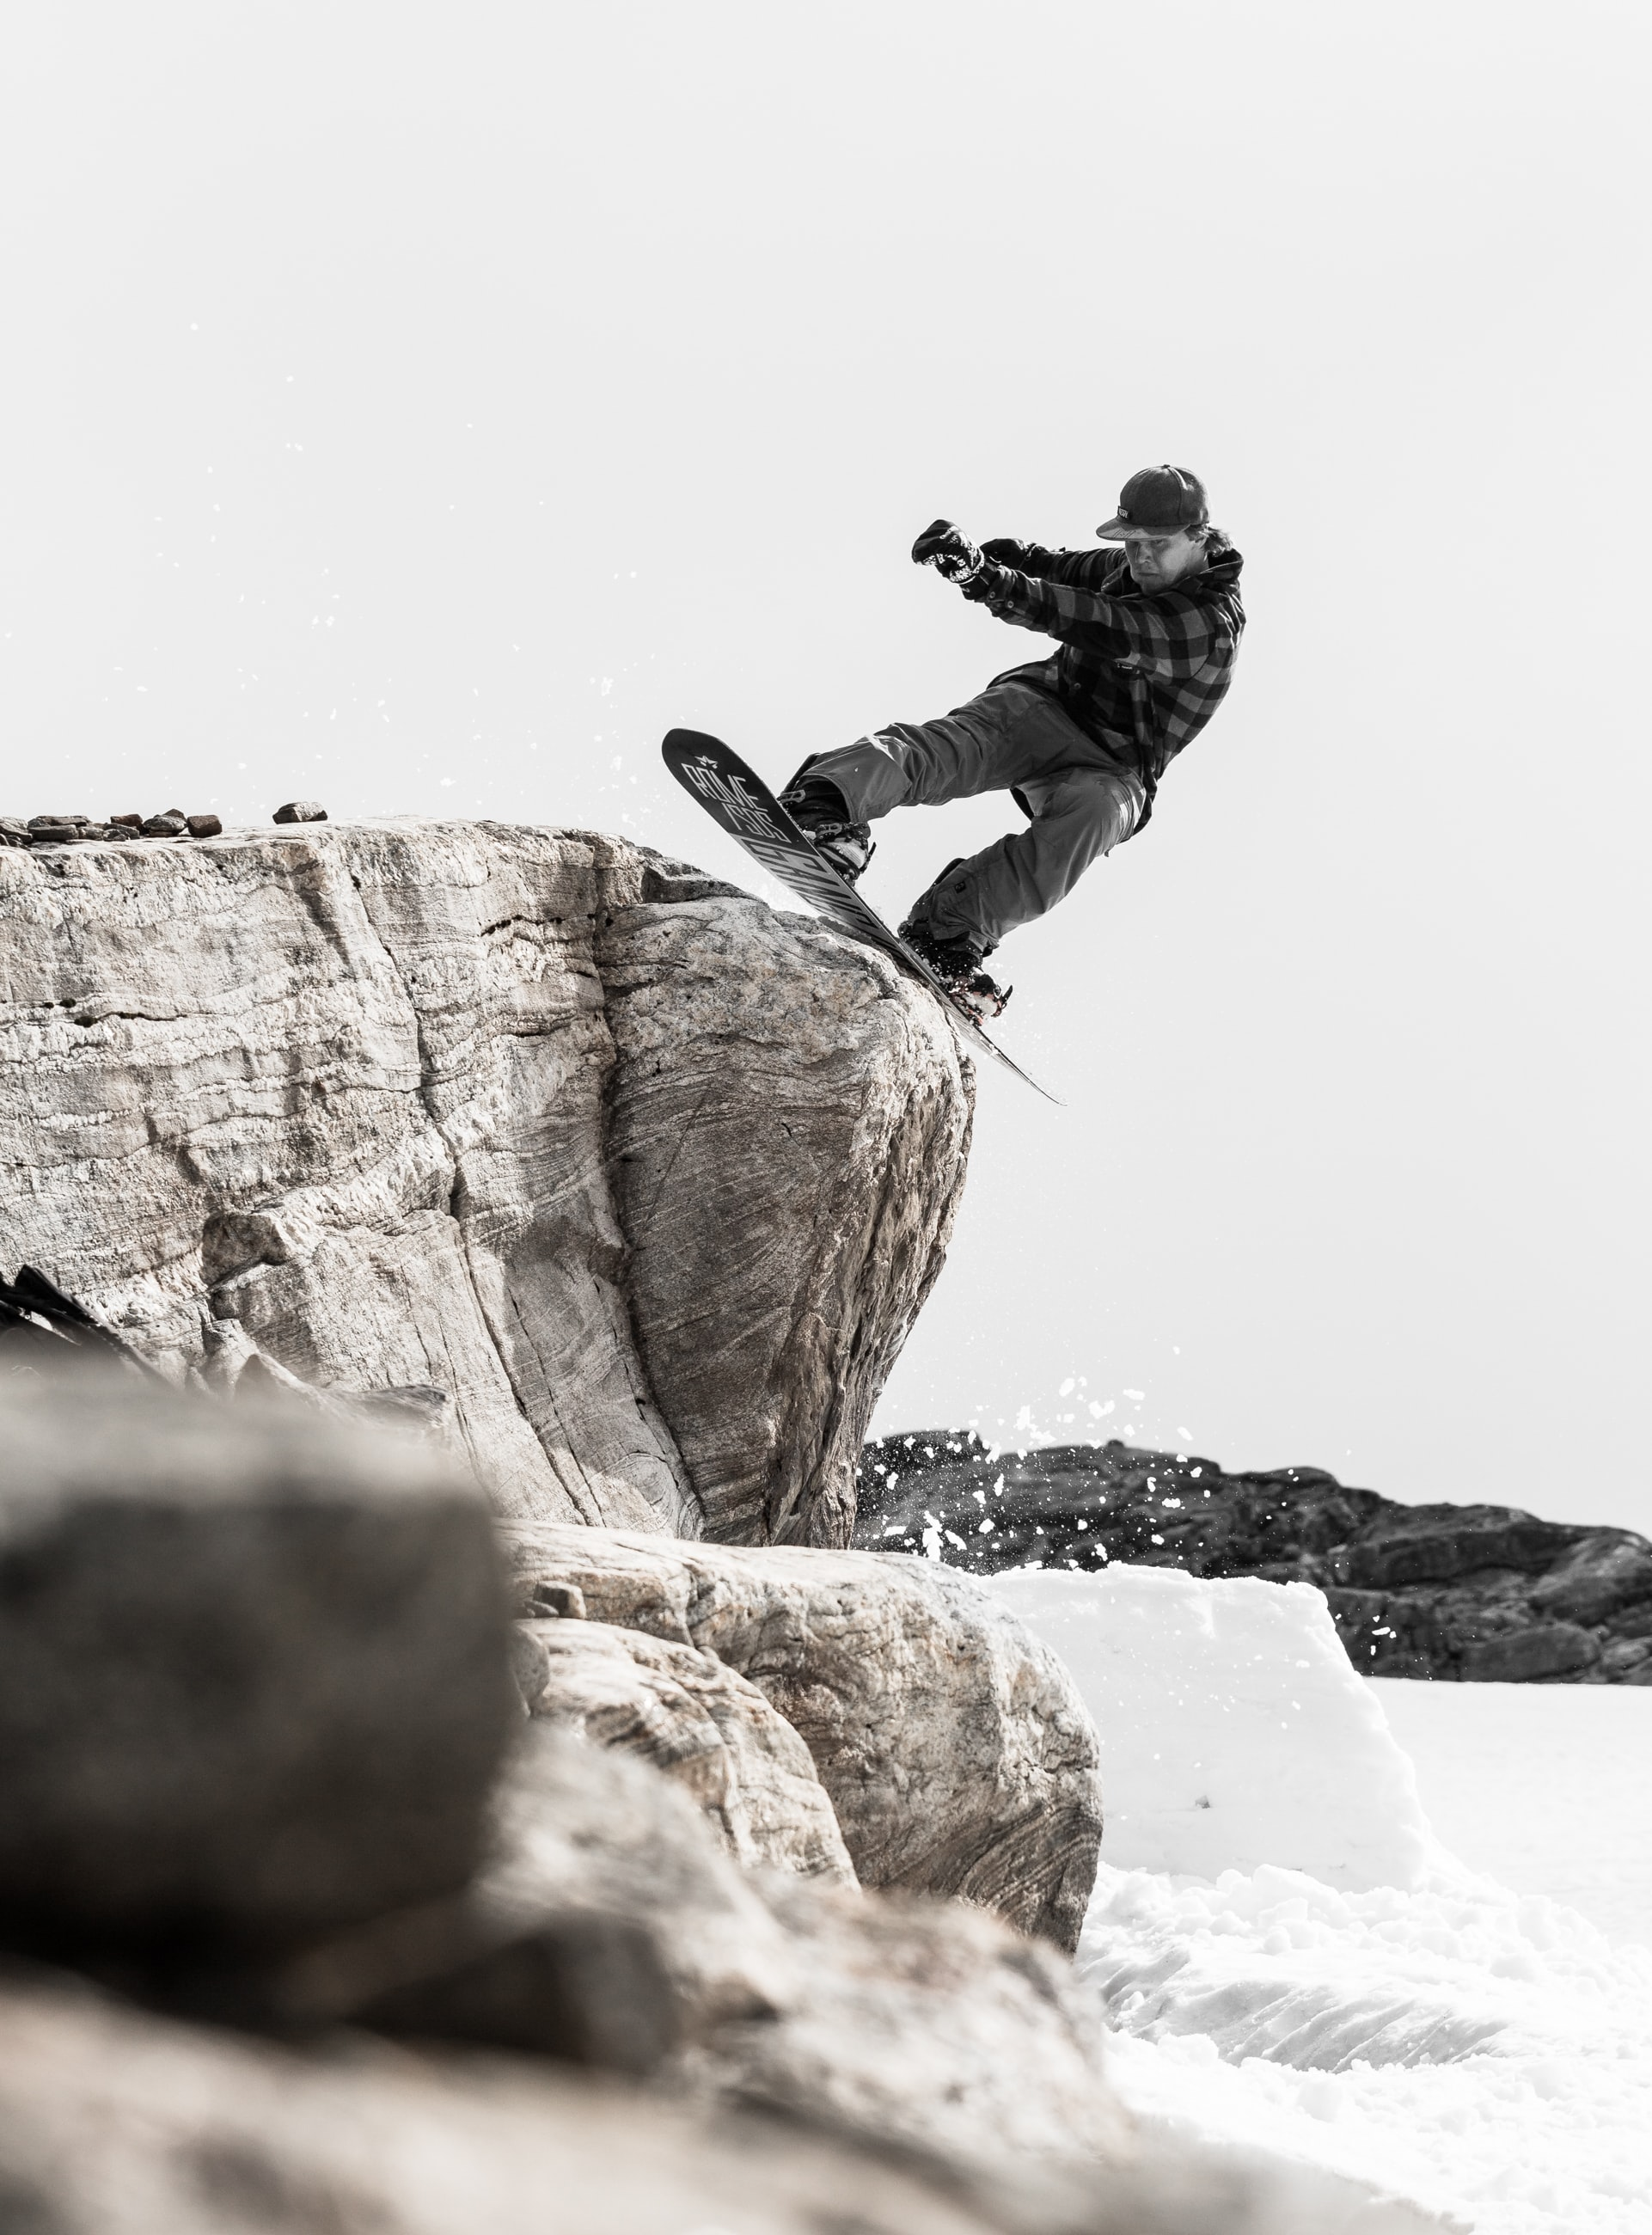 A snowboarder performs a trick and stalls on a boulder on a snowy mountain